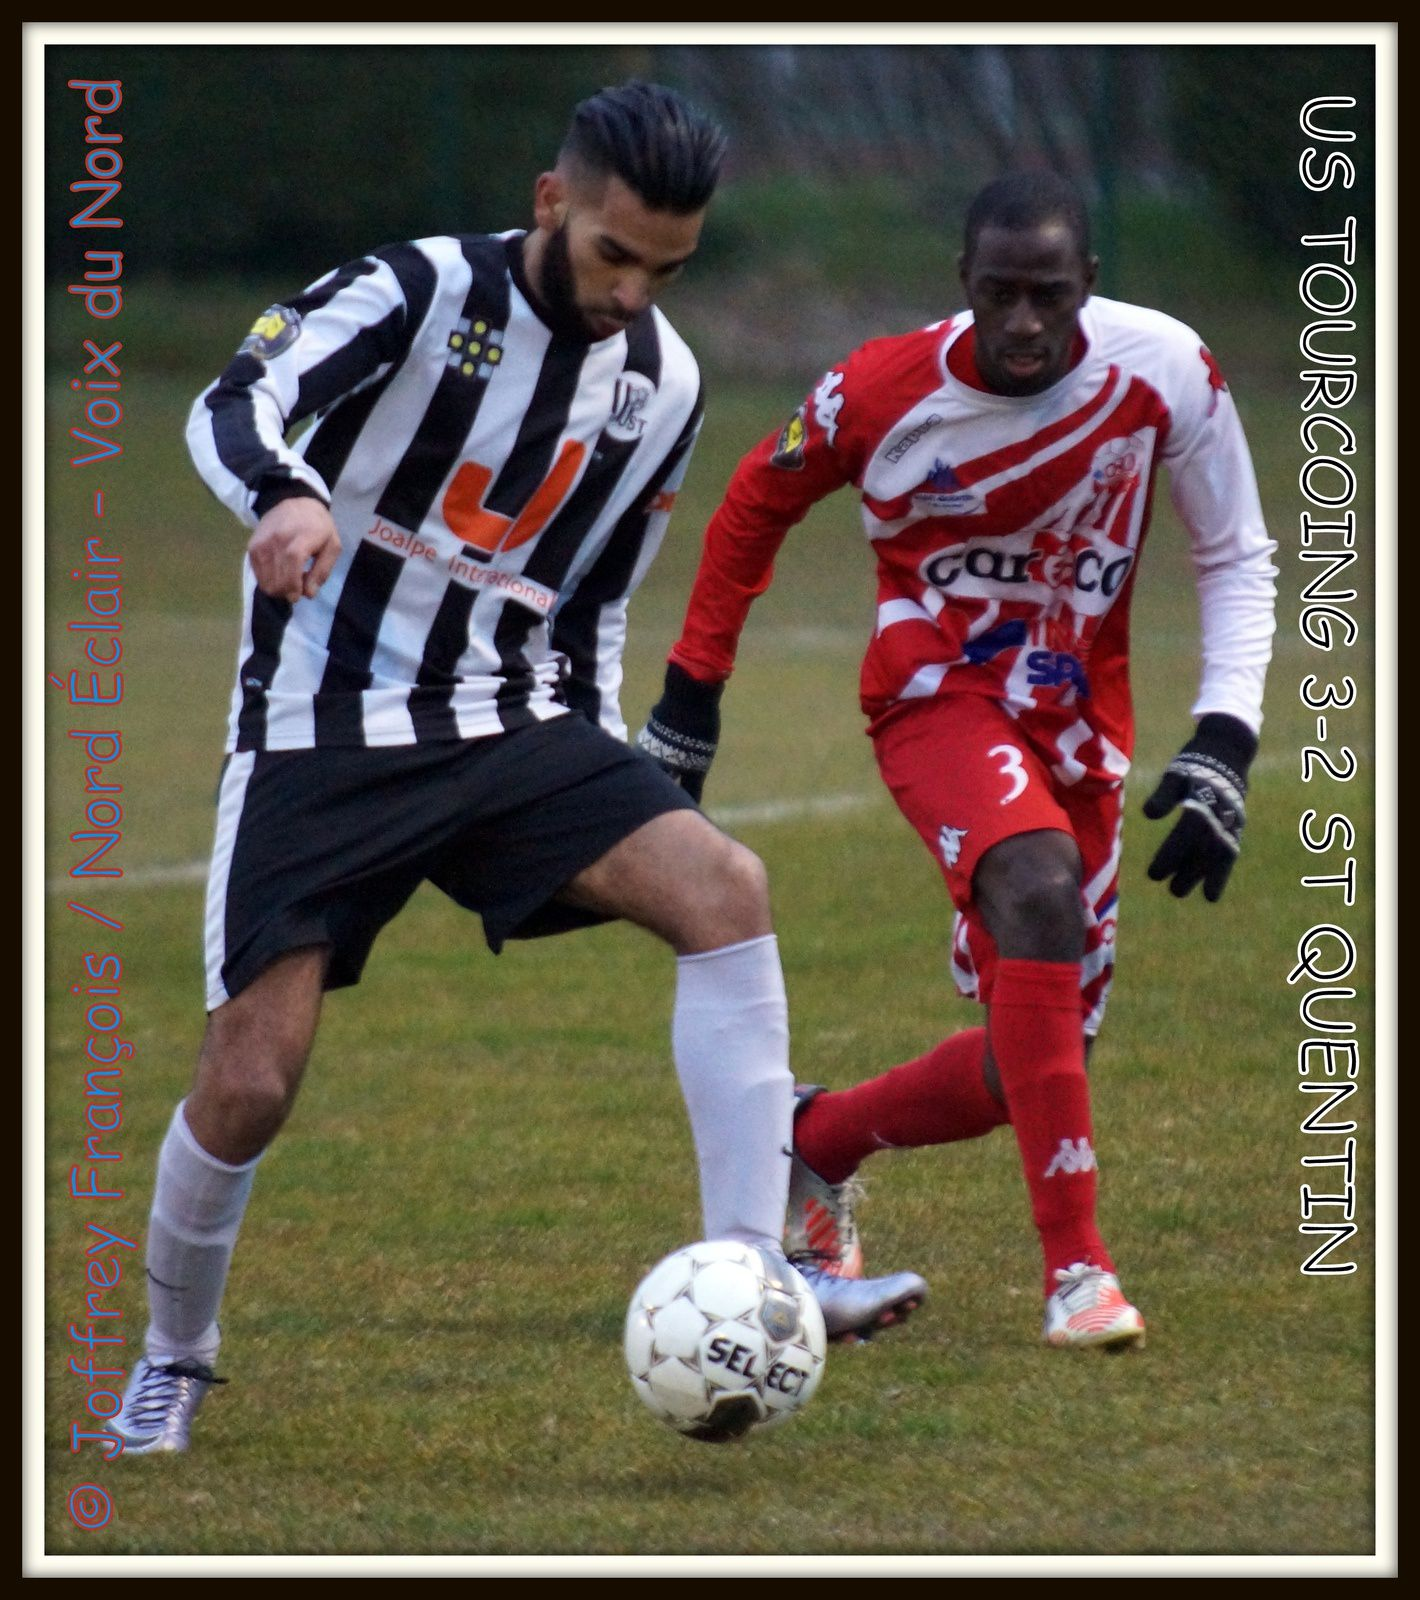 19.03.16  CFA 2 Tourcoing - St Quentin